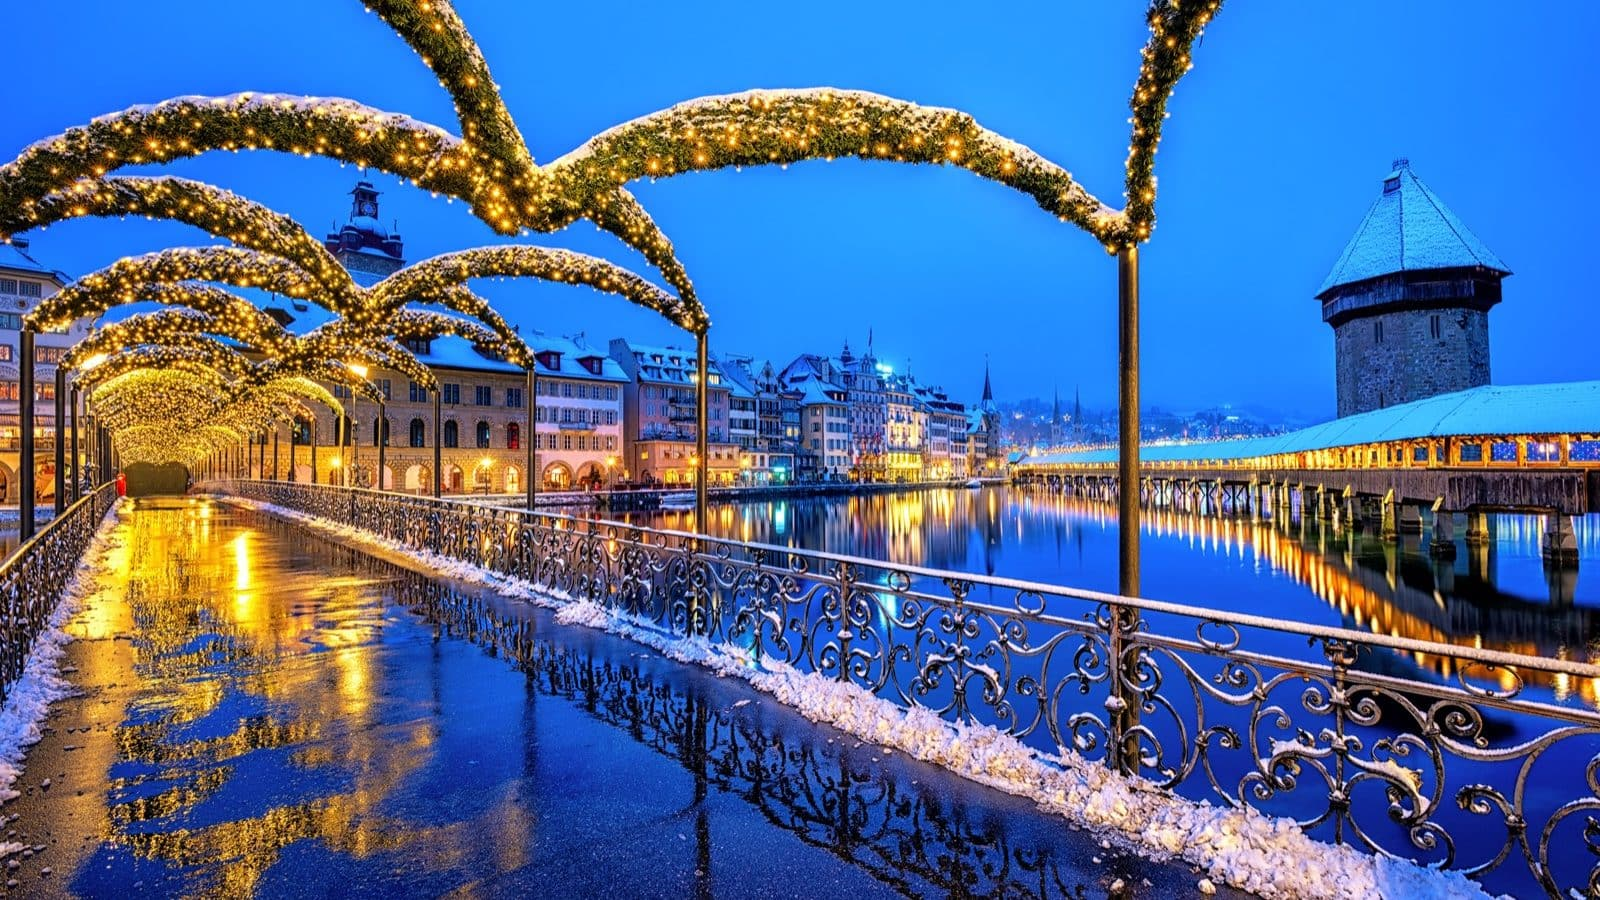 Christmas Traditions in Switzerland - How Xmas is Celebrated